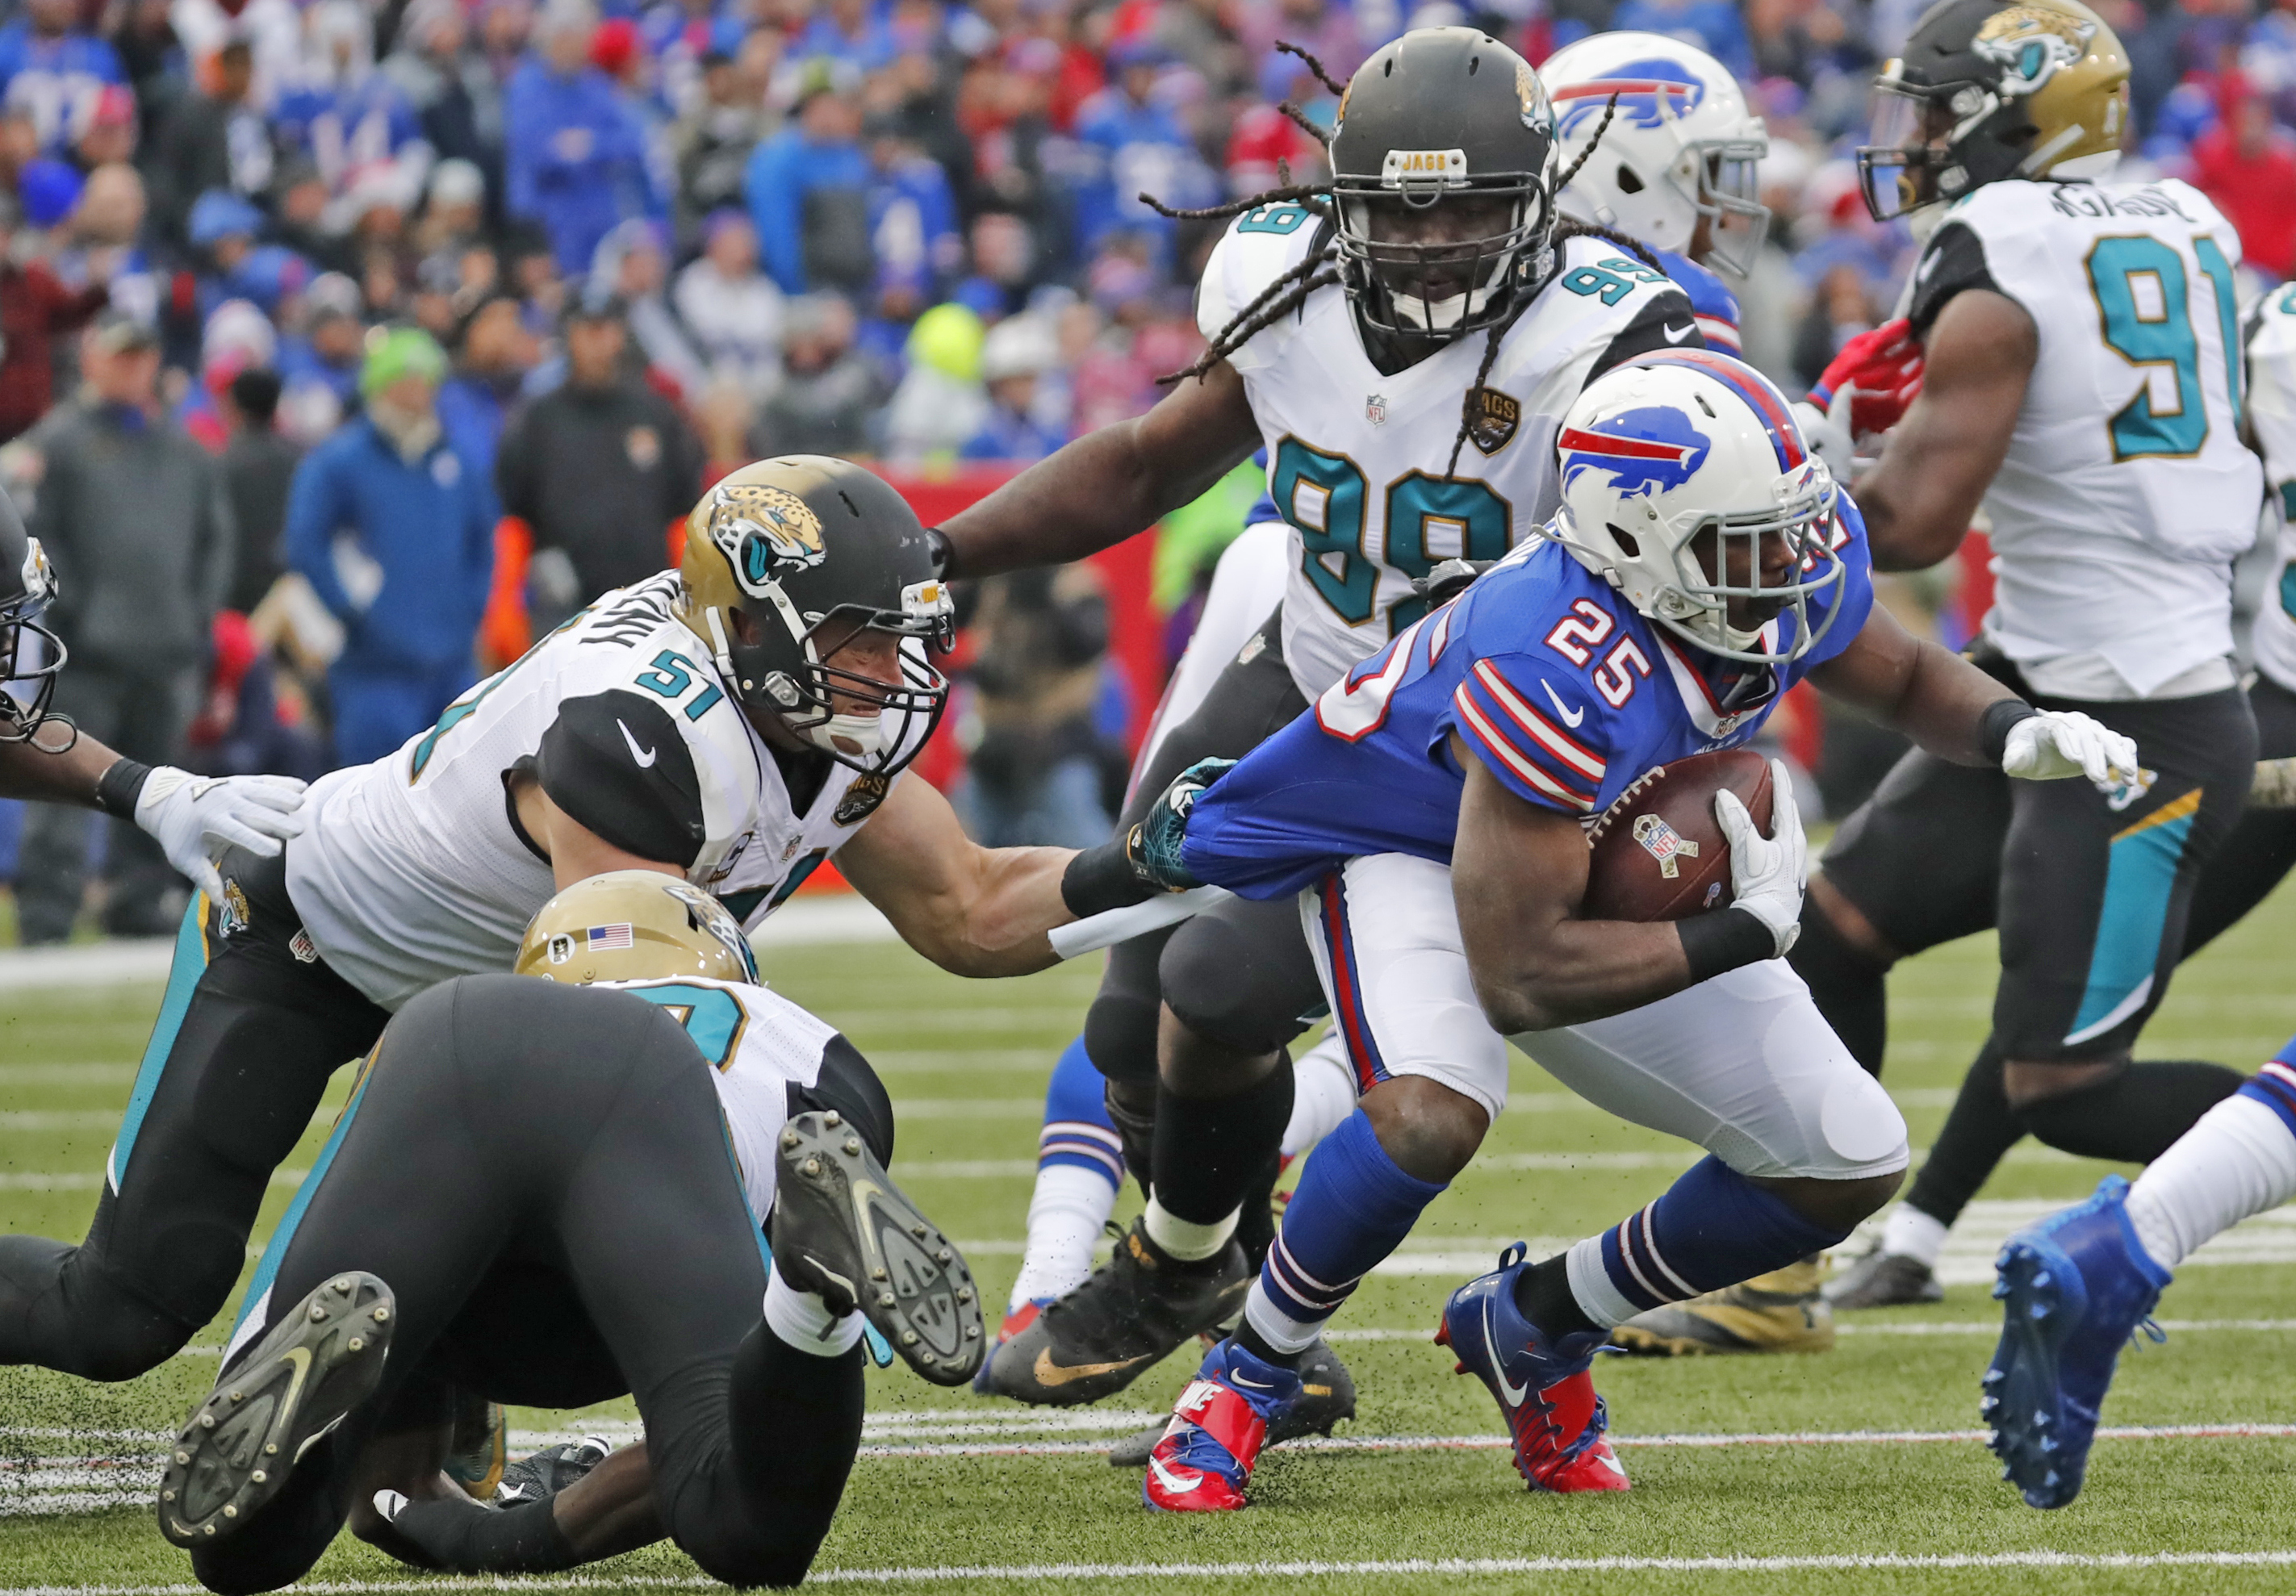 Buffalo Bills running back LeSean McCoy is tackled by the Jacksonville Jaguars' Paul Posluszny during the second quarter. (Harry Scull Jr./Buffalo News)